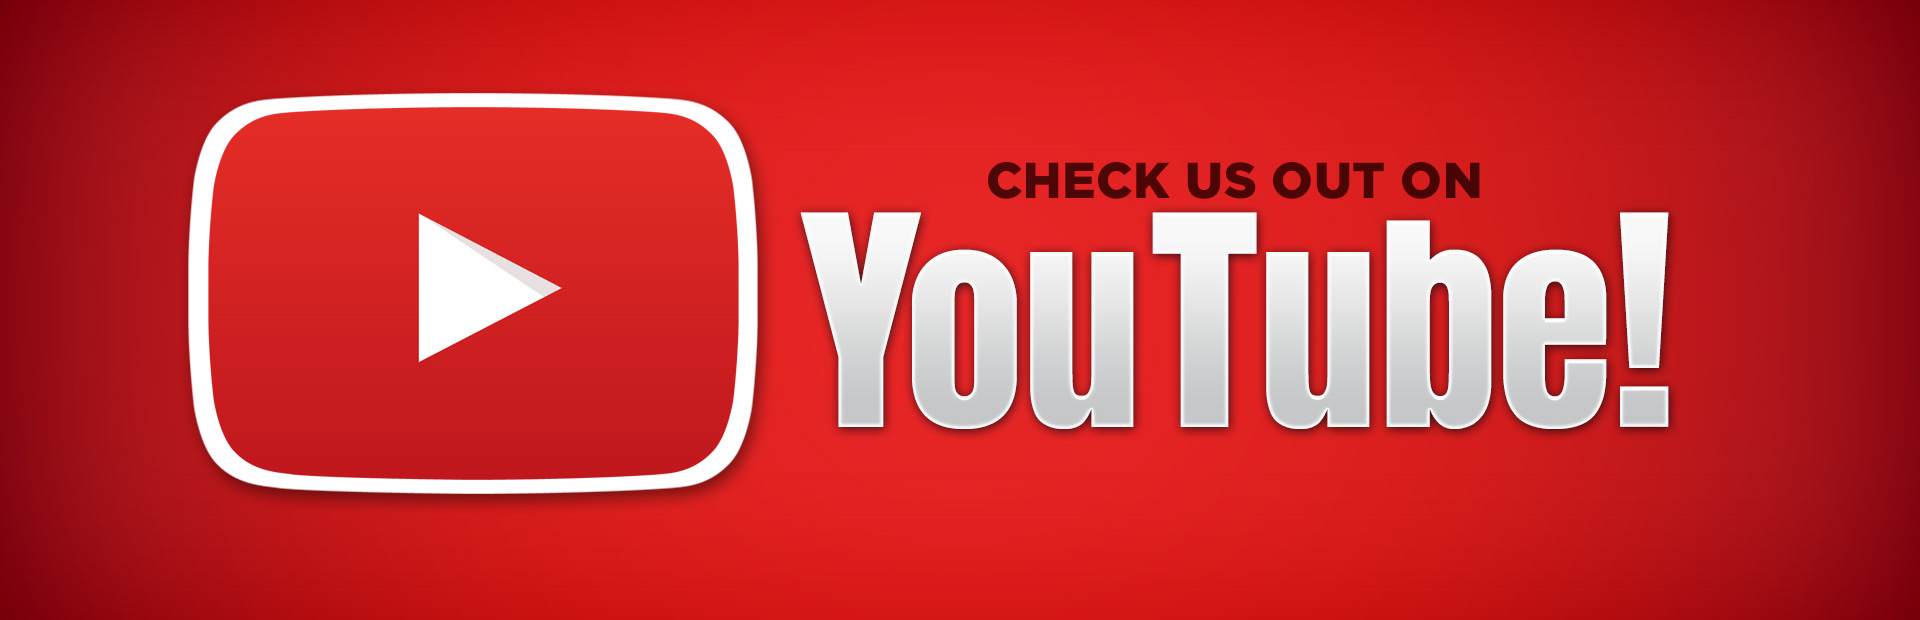 Click here to check us out on YouTube!